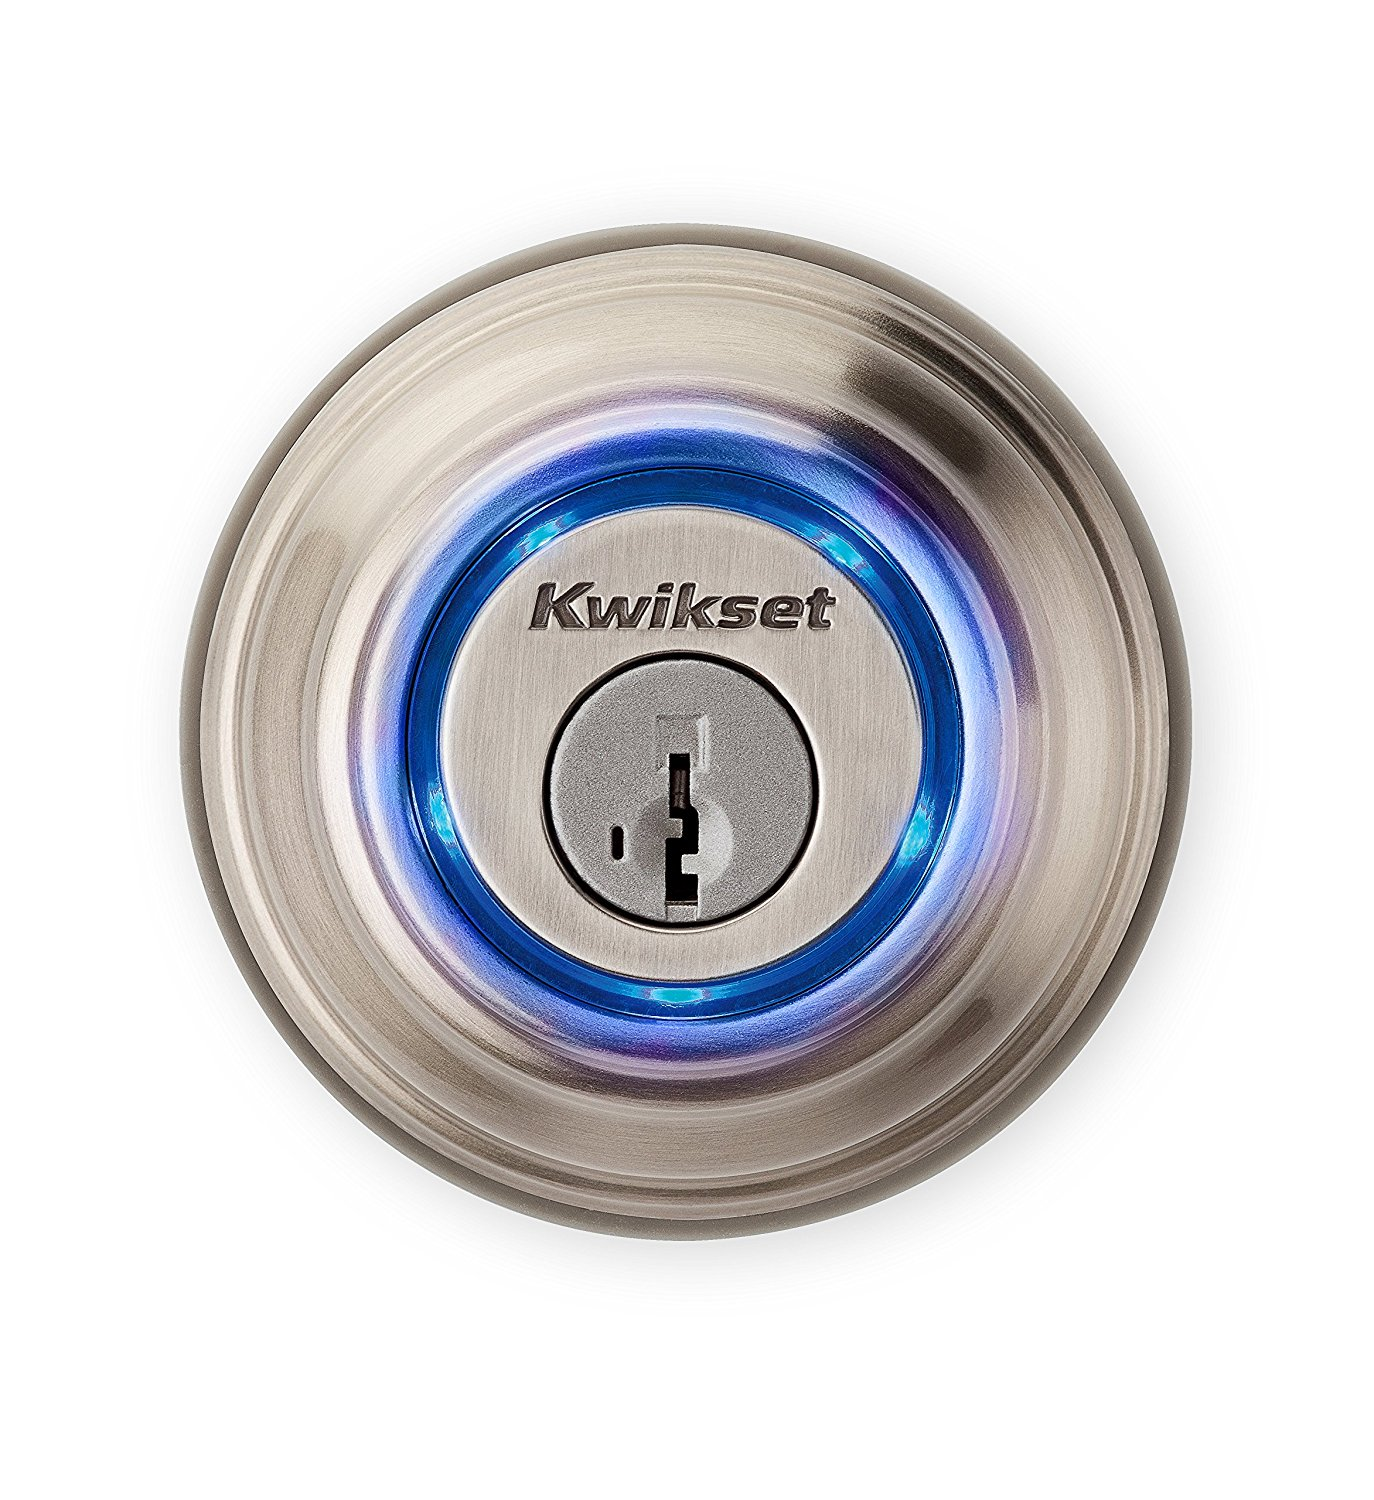 Kwikset brand bluetooth door lock